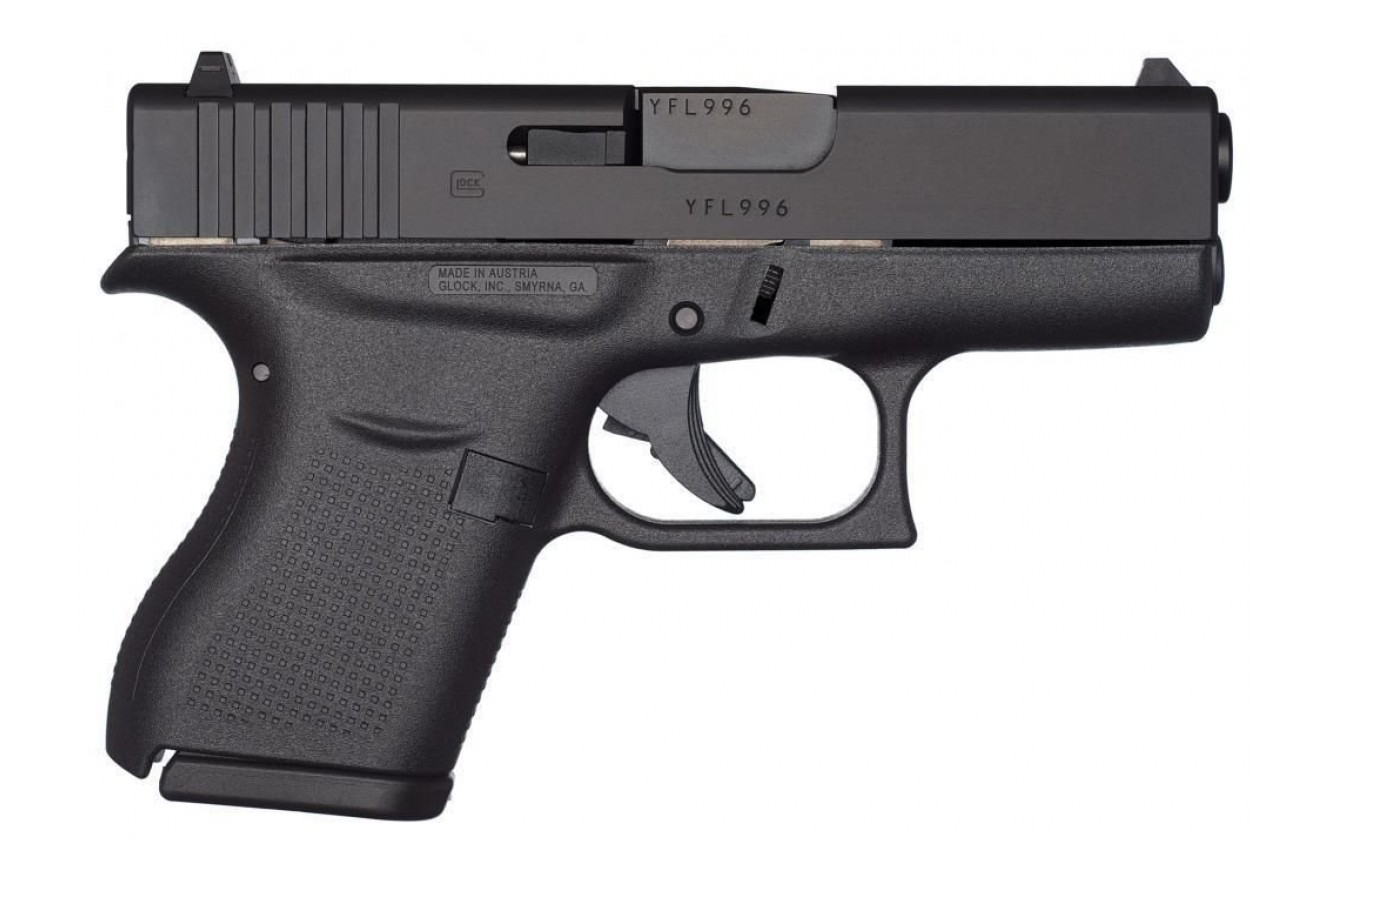 The main selling point of the Glock 43 is its diminutive size.